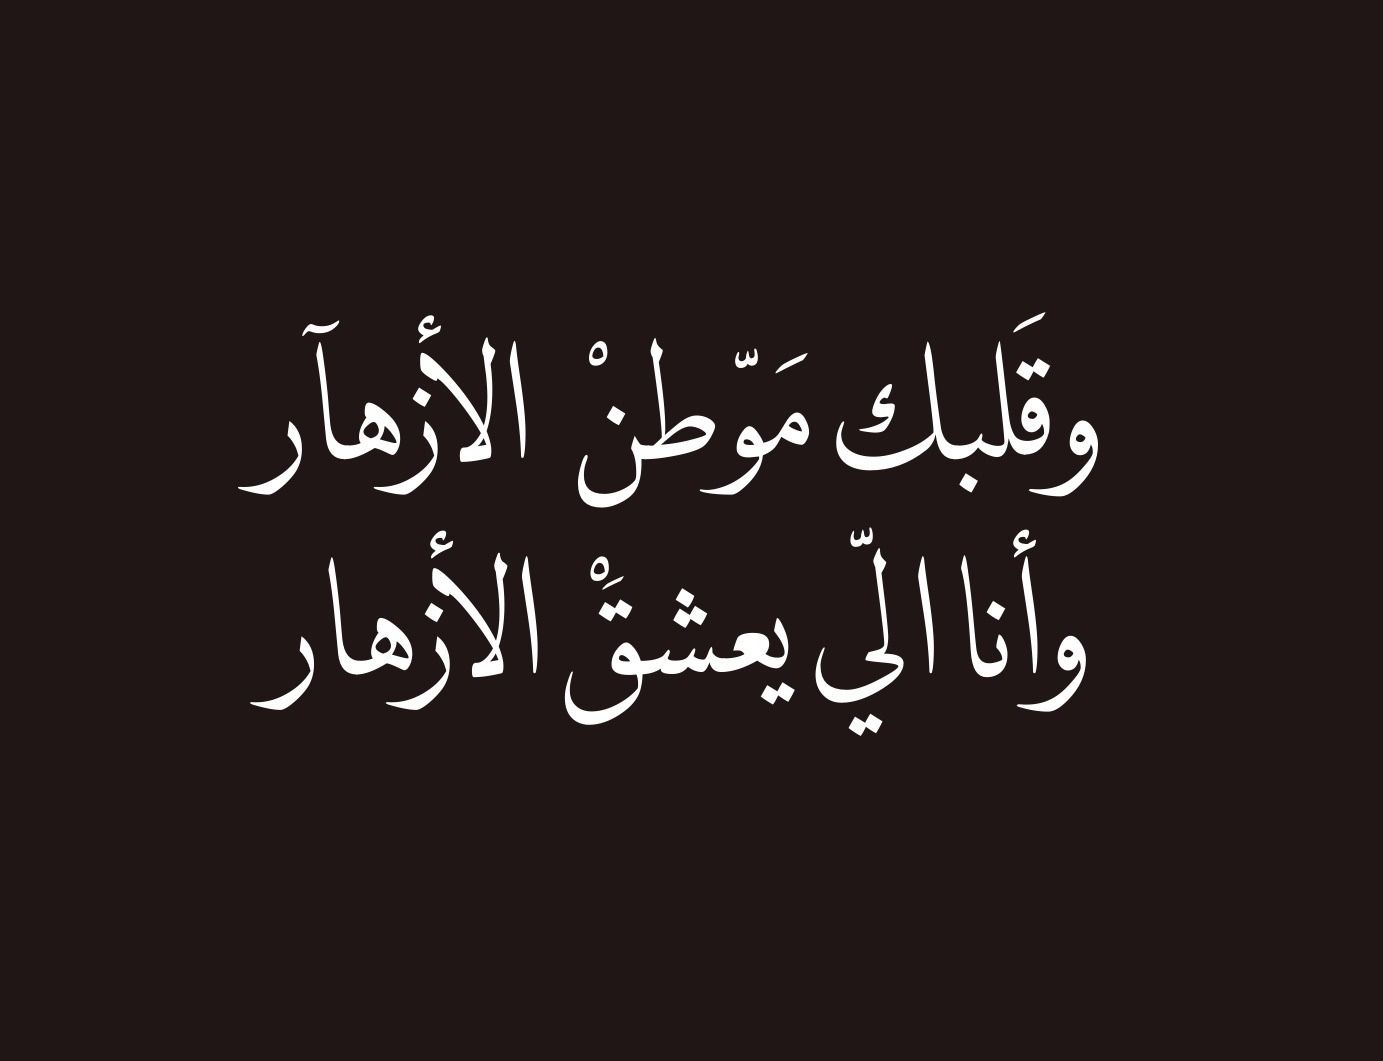 Pin By Randa Bny Sakher On ابـو نـوره Beautiful Arabic Words Words Quotes Instagram Photo Ideas Posts